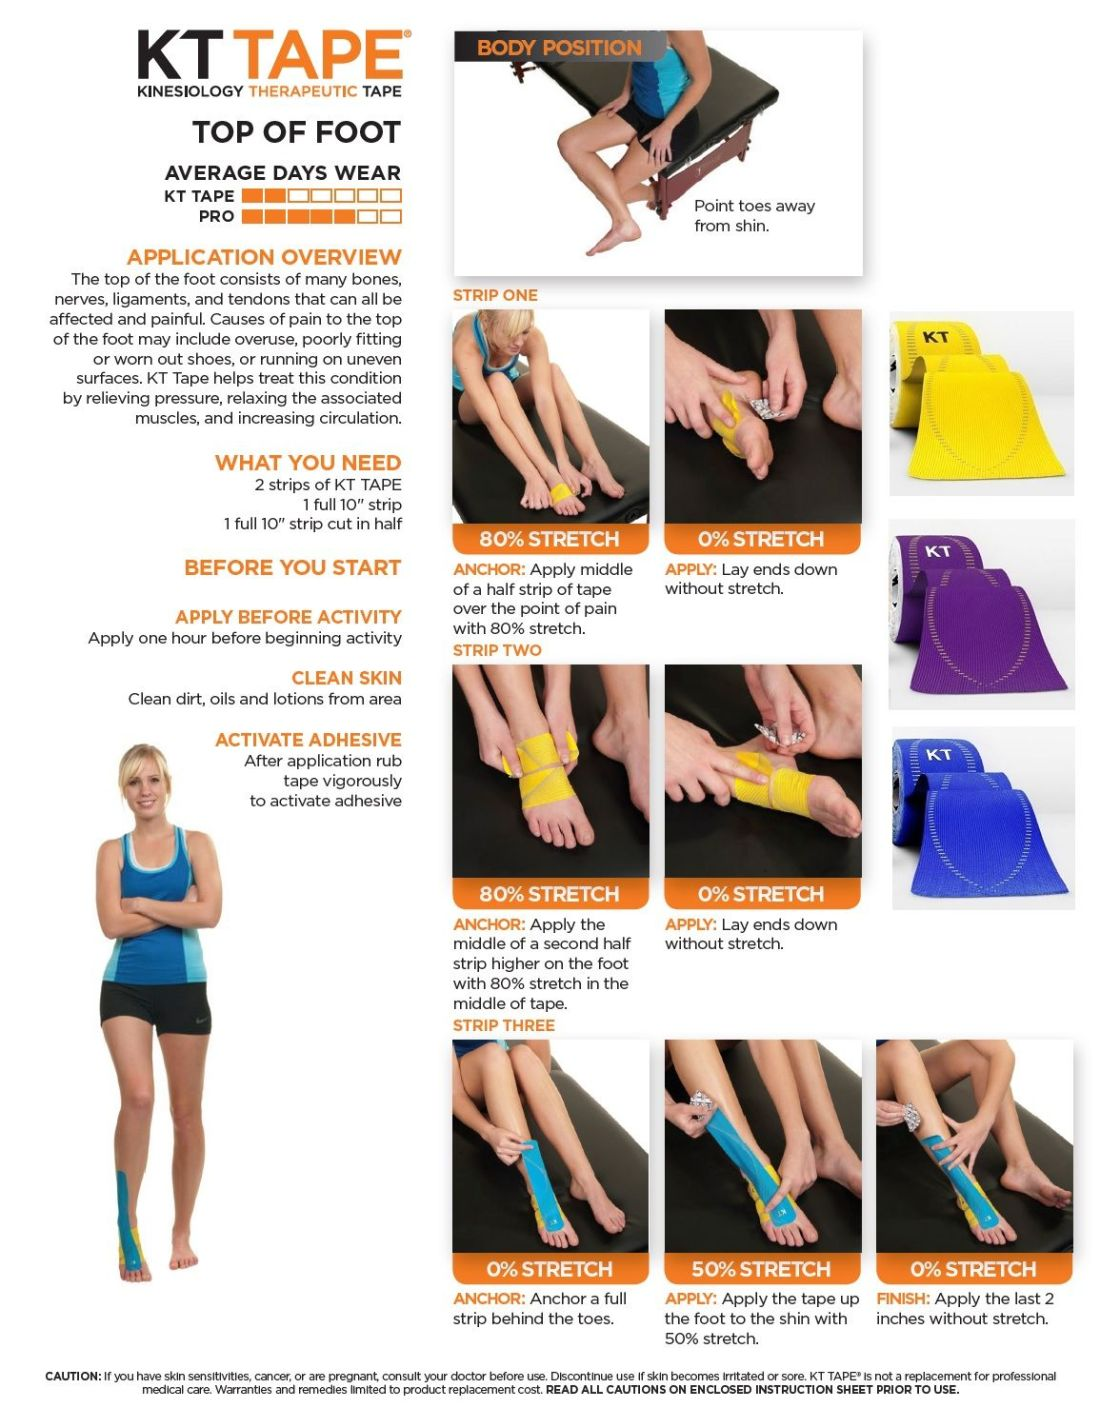 Anklesfeet how to apply kt tape instruction and videos